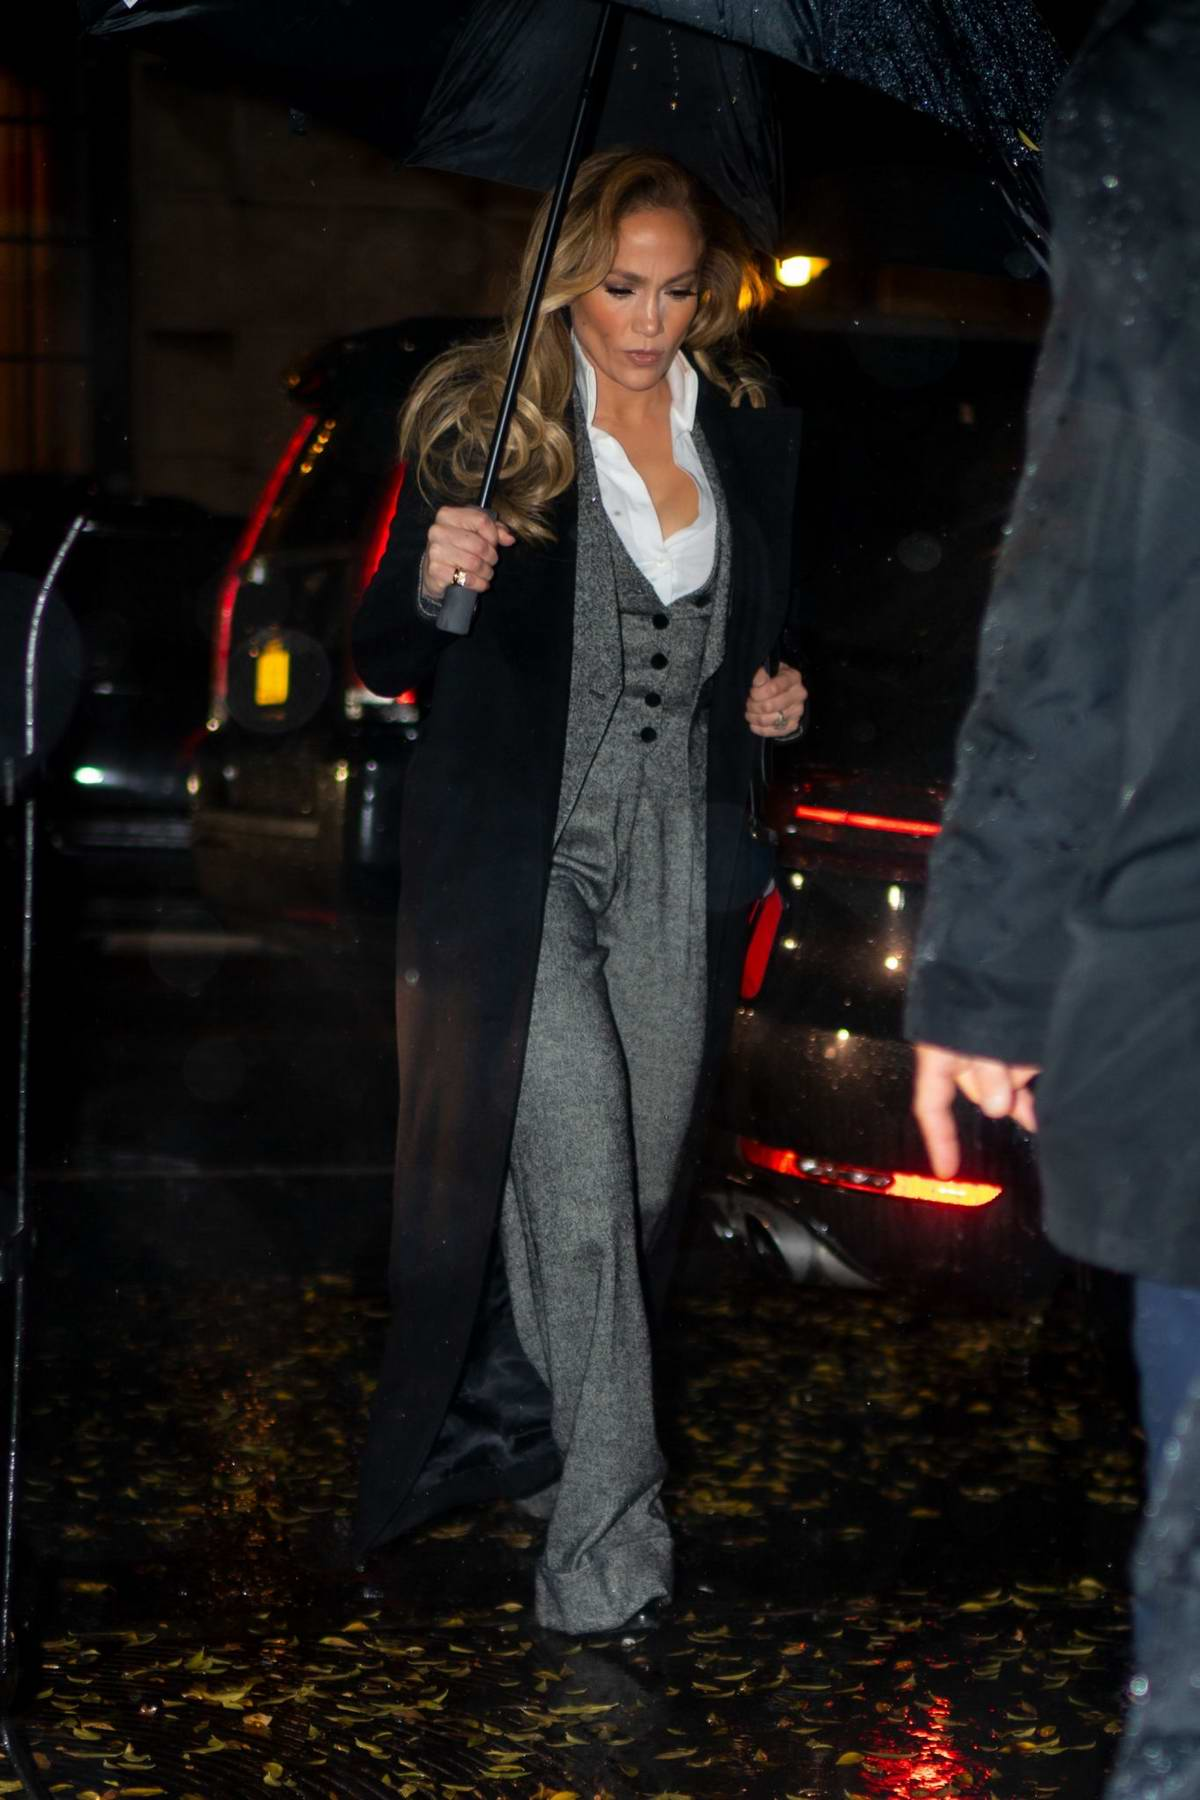 Jennifer Lopez looks stylish in a grey suit and black trench coat as she heads to dinner in New York City